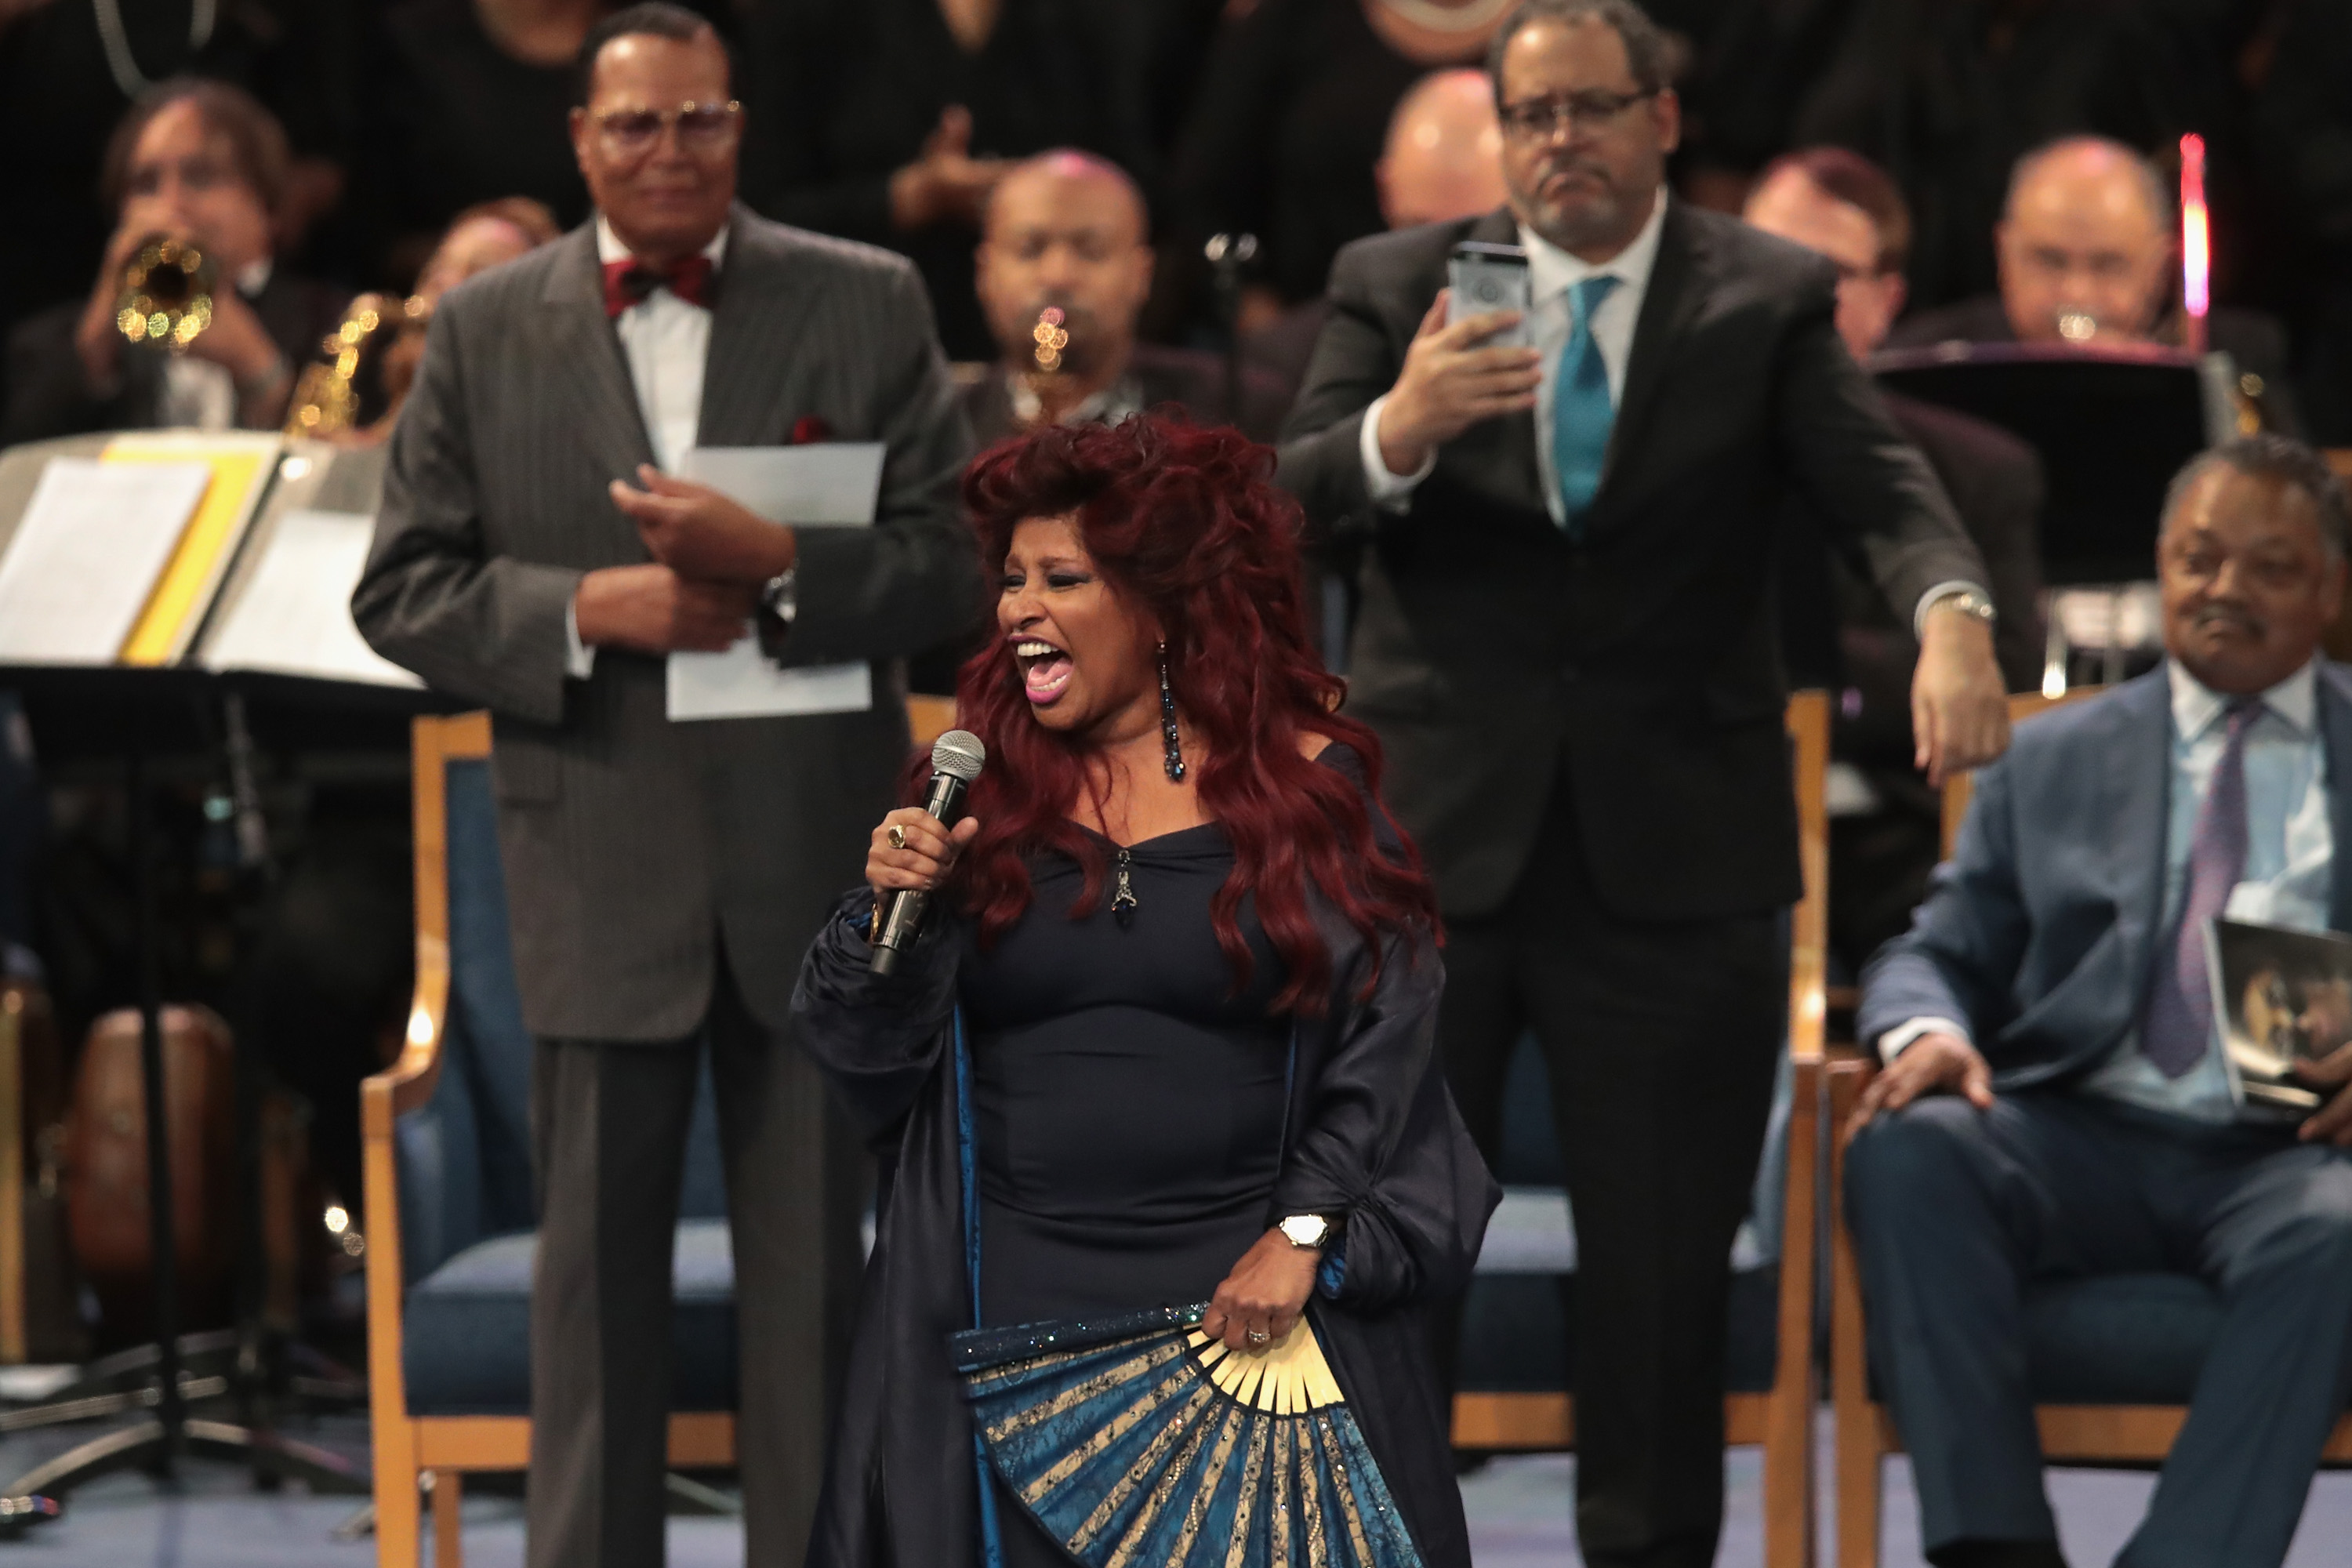 Singer Chaka Khan performs at the funeral for Aretha Franklin at the Greater Grace Temple on August 31, 2018 in Detroit, Michigan.